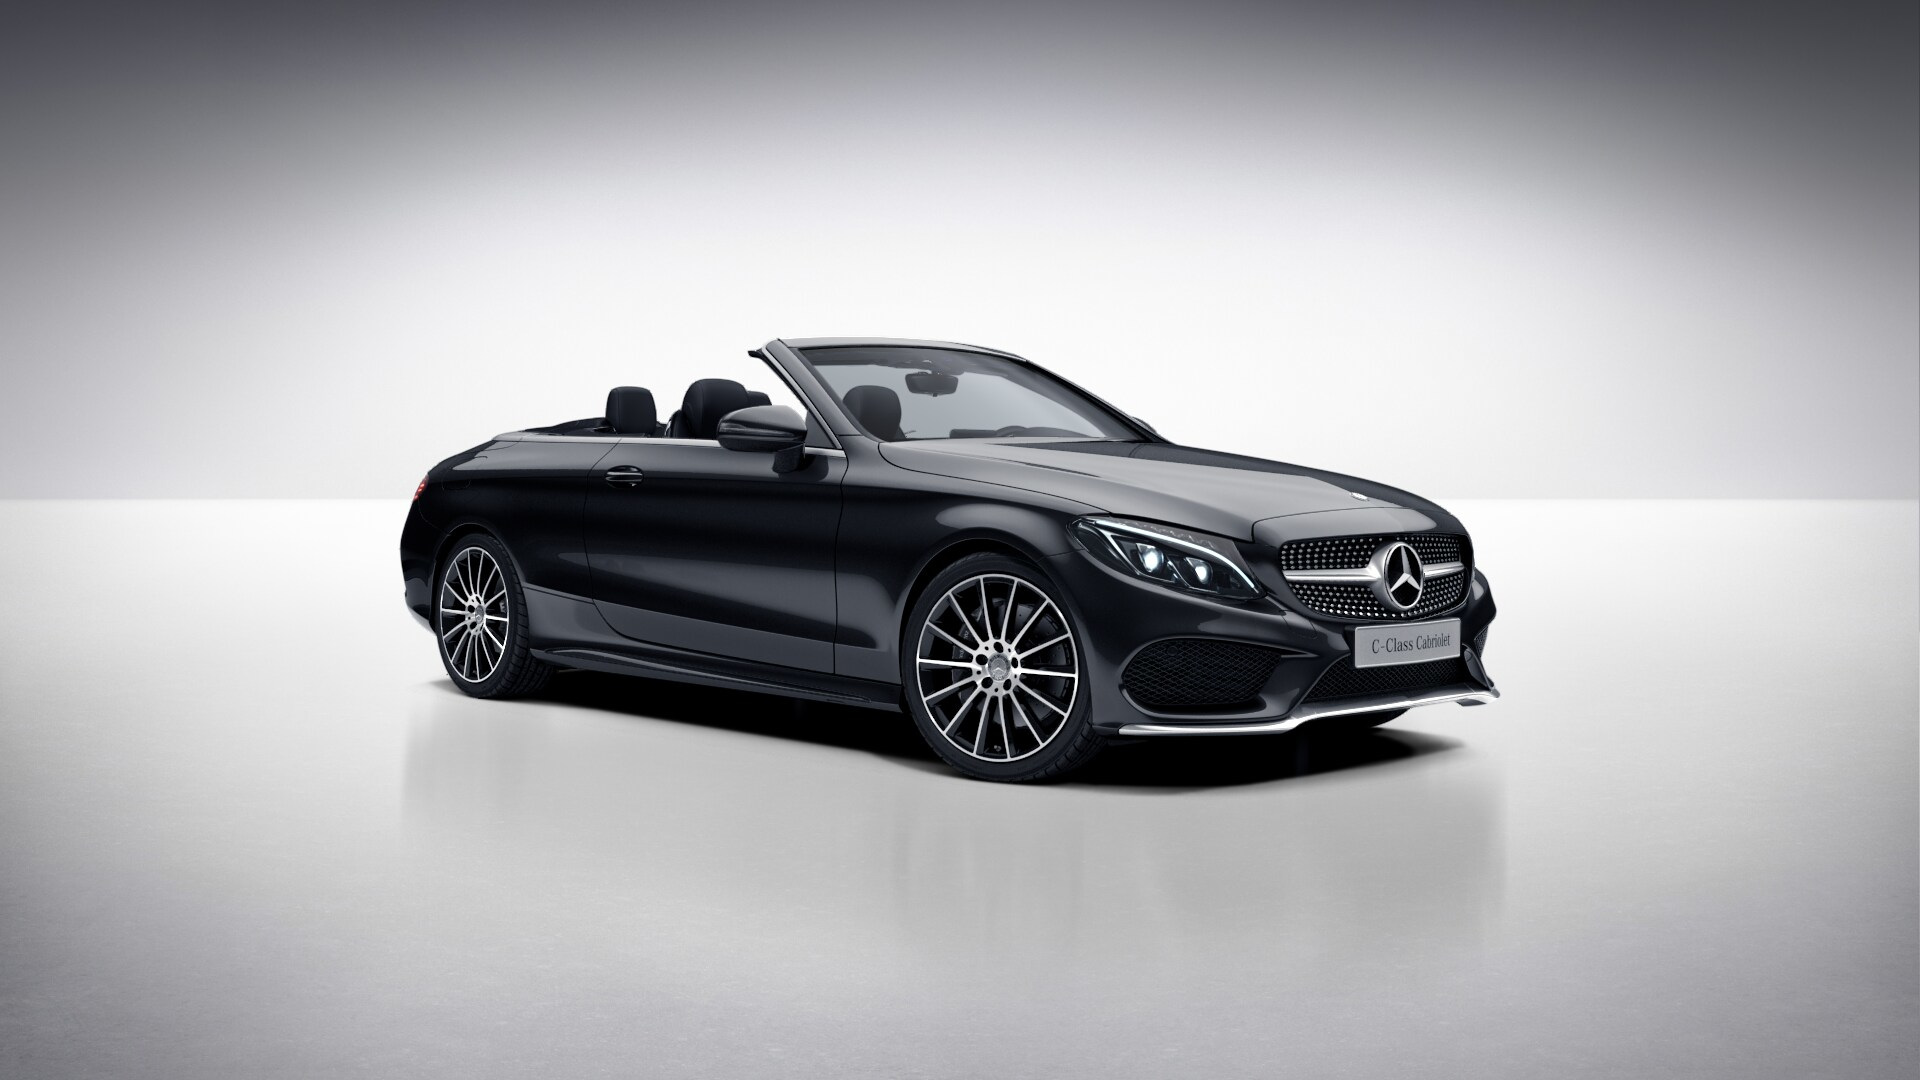 new 2017 mercedes benz c class c43 amg cabriolet 7b0775 mercedes benz of canada new and cpo. Black Bedroom Furniture Sets. Home Design Ideas